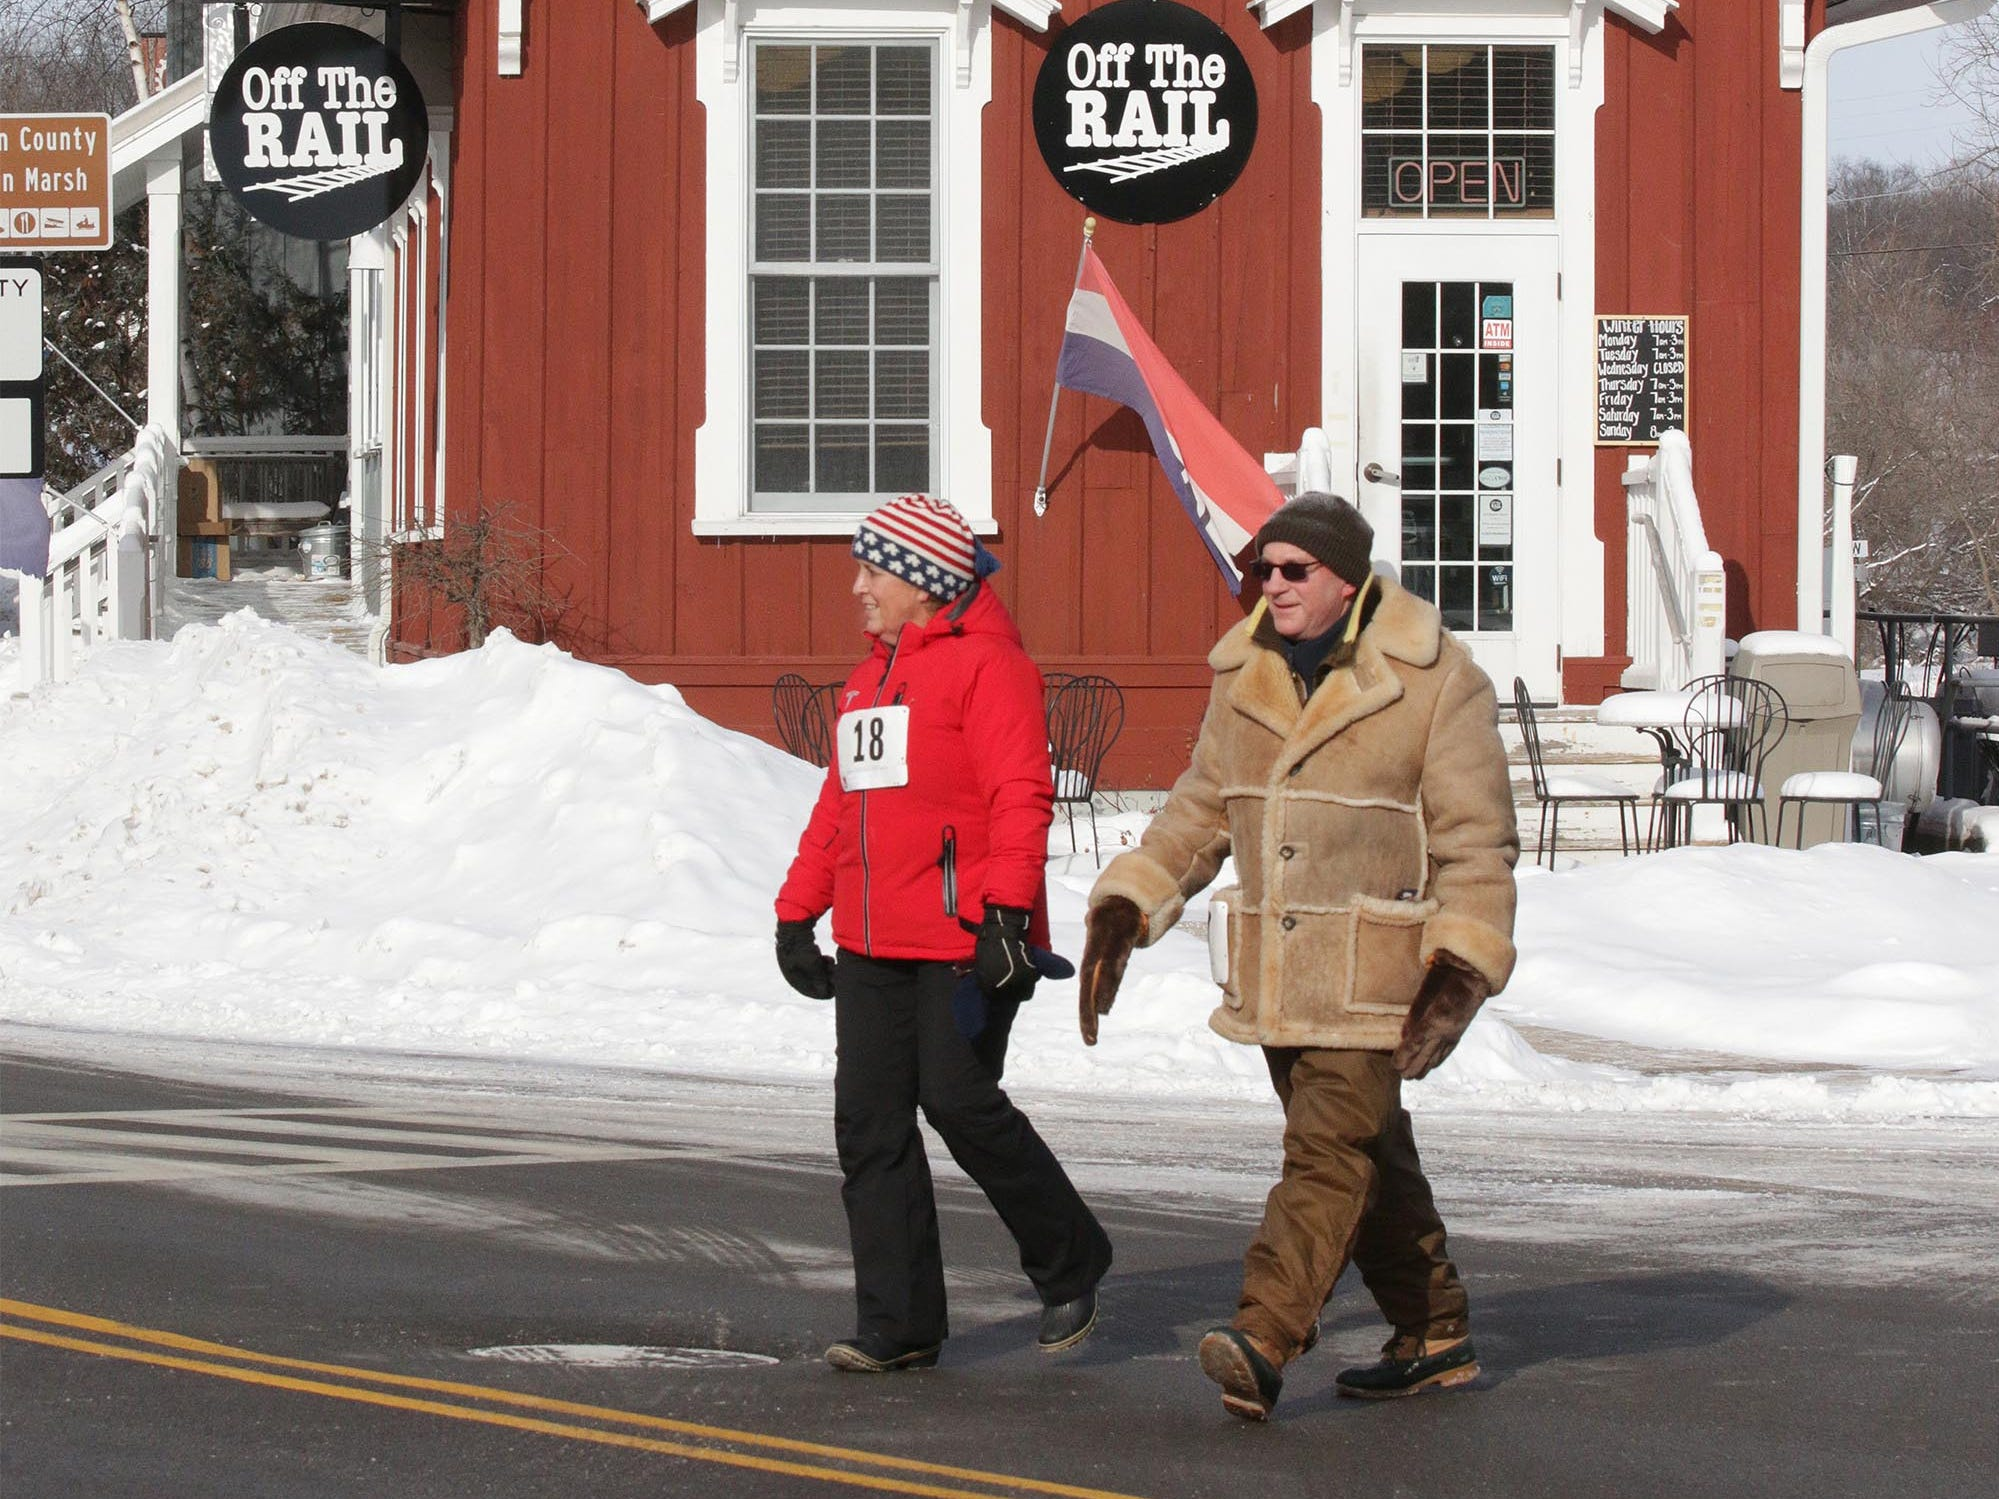 Thomas, left, and Lisa Liebl of Sheboygan, Wis., participate in the 2-miles walk/run Schneelauf Run, Saturday, January 26, 2019, in Elkhart Lake, Wis.